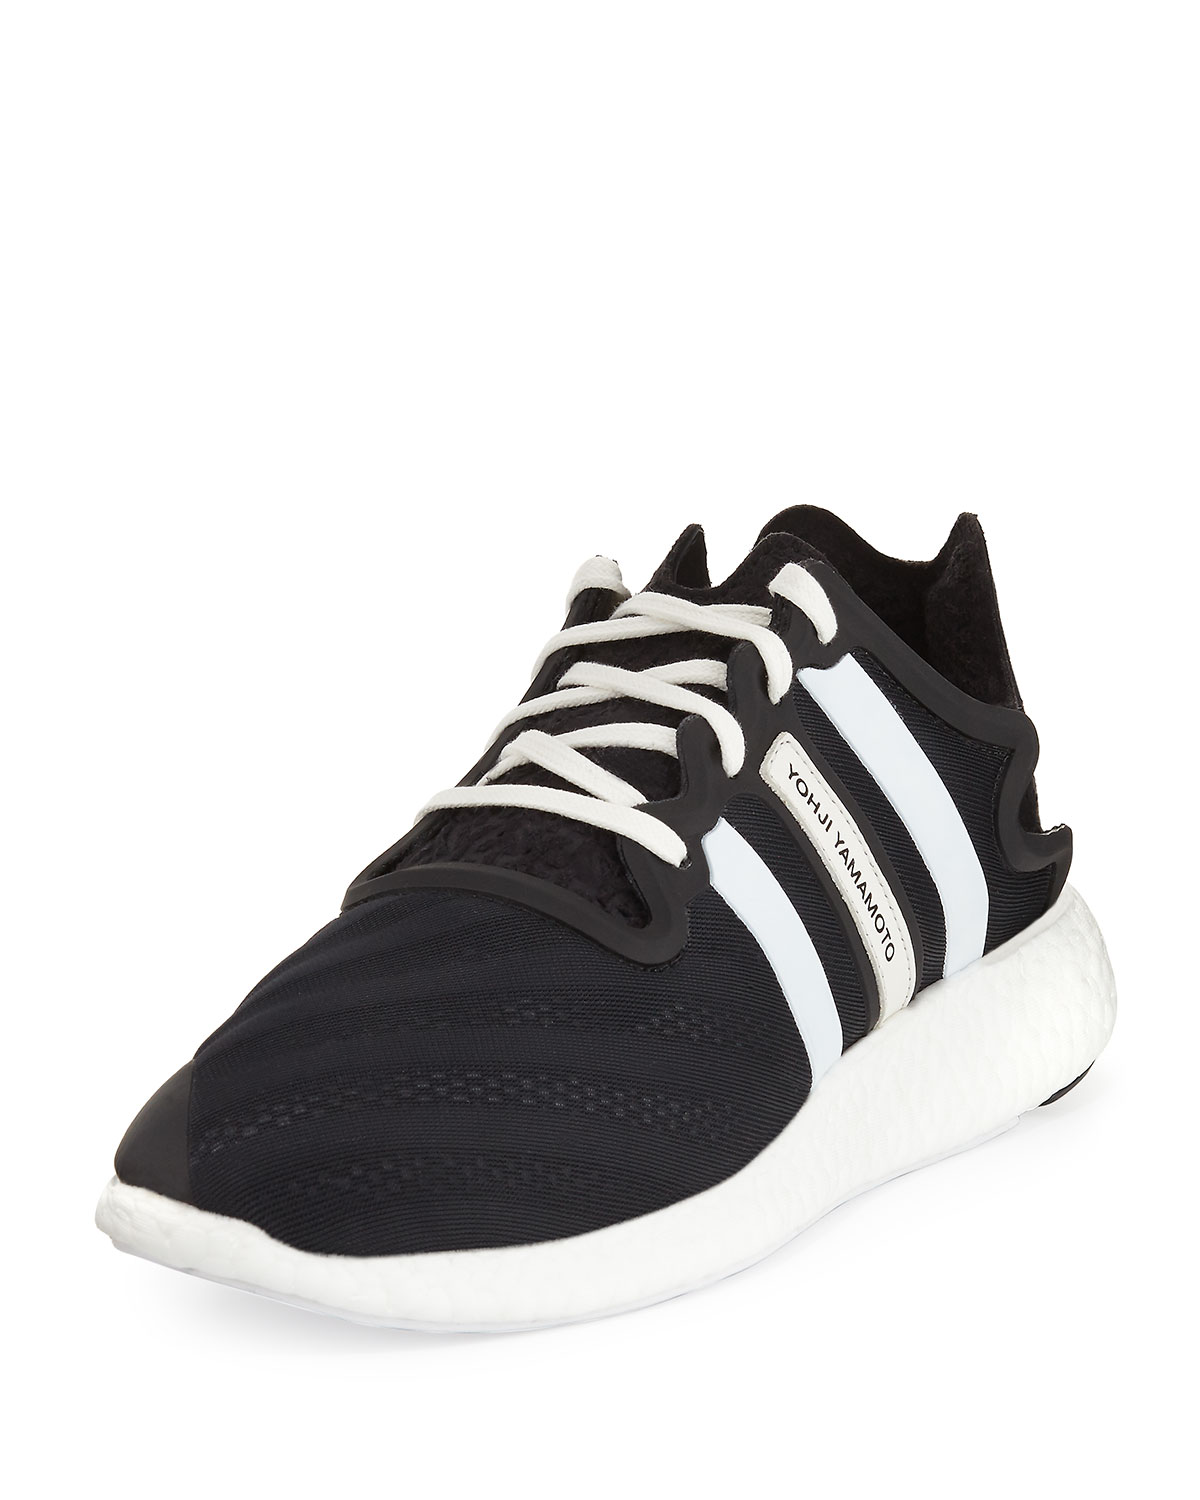 outlet store 7a3ba 18a4a Y-3Mens Y-3 Yohji Run Sneaker, BlackWhite